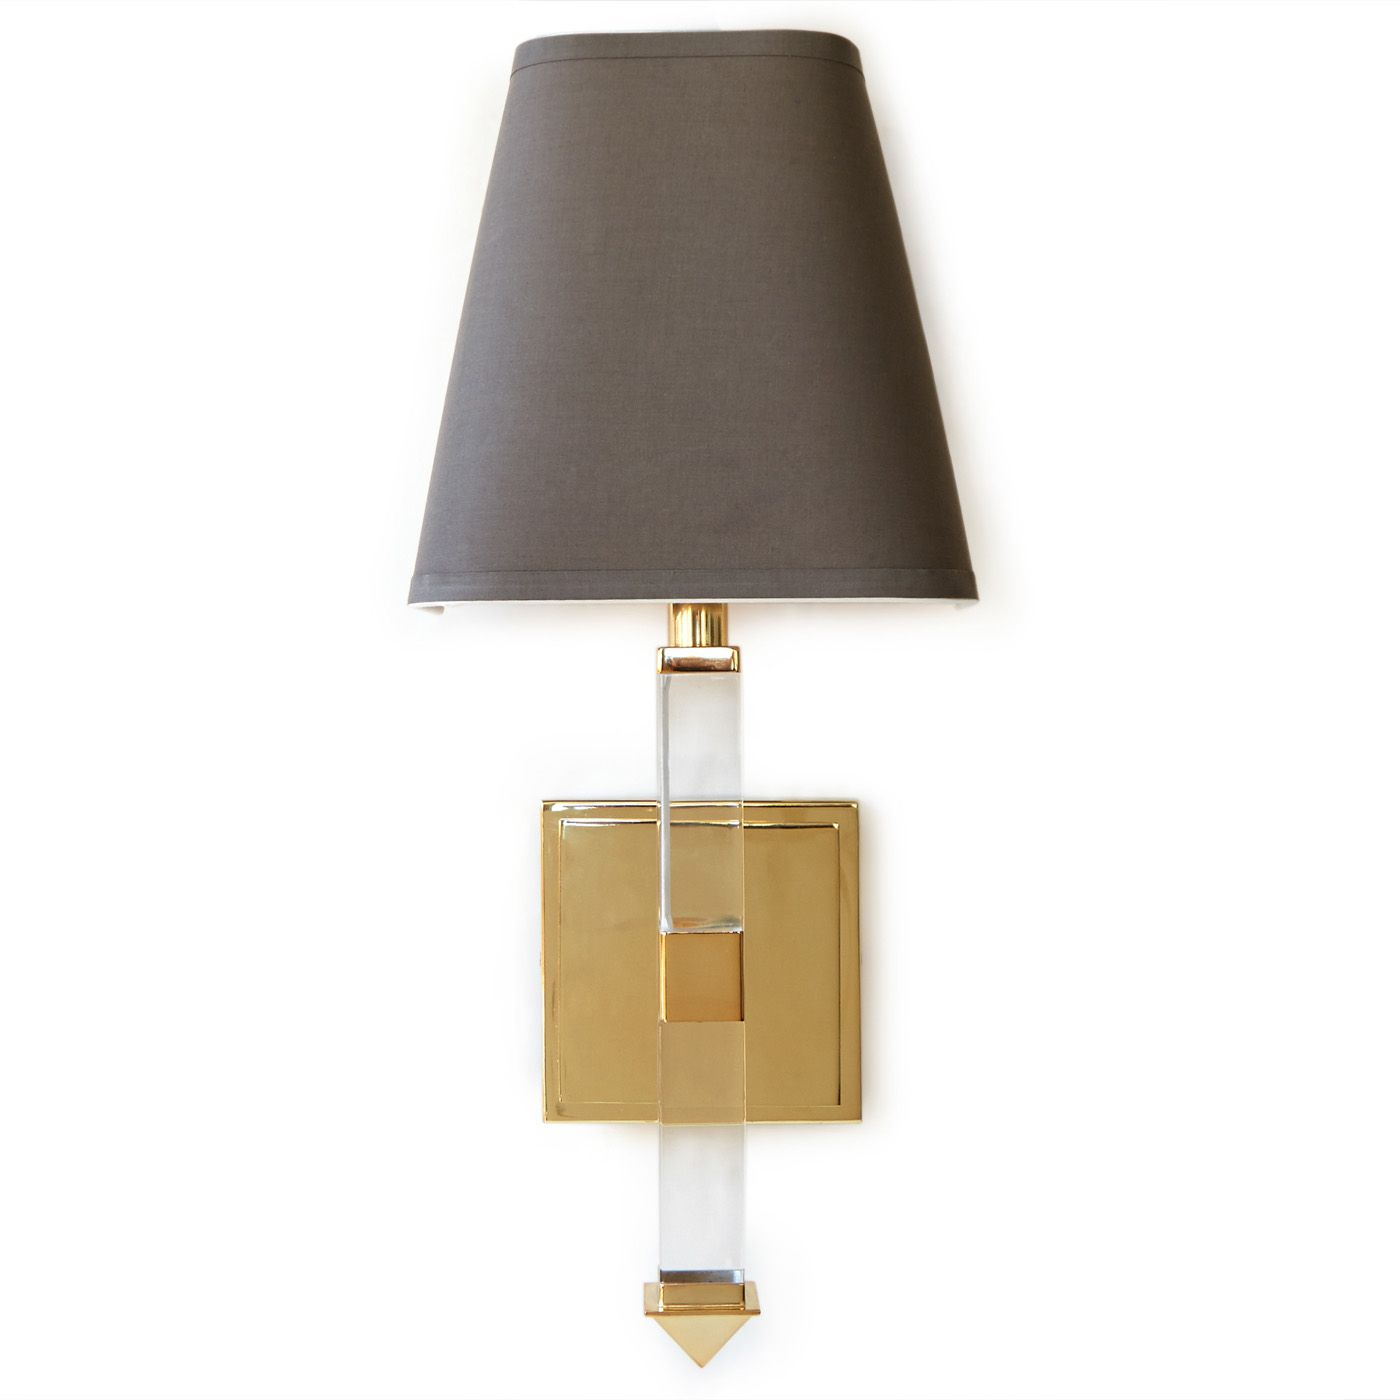 jonathanadler you've done it again with this classic wall sconce  - jonathanadler you've done it again with this classic wall sconce we love